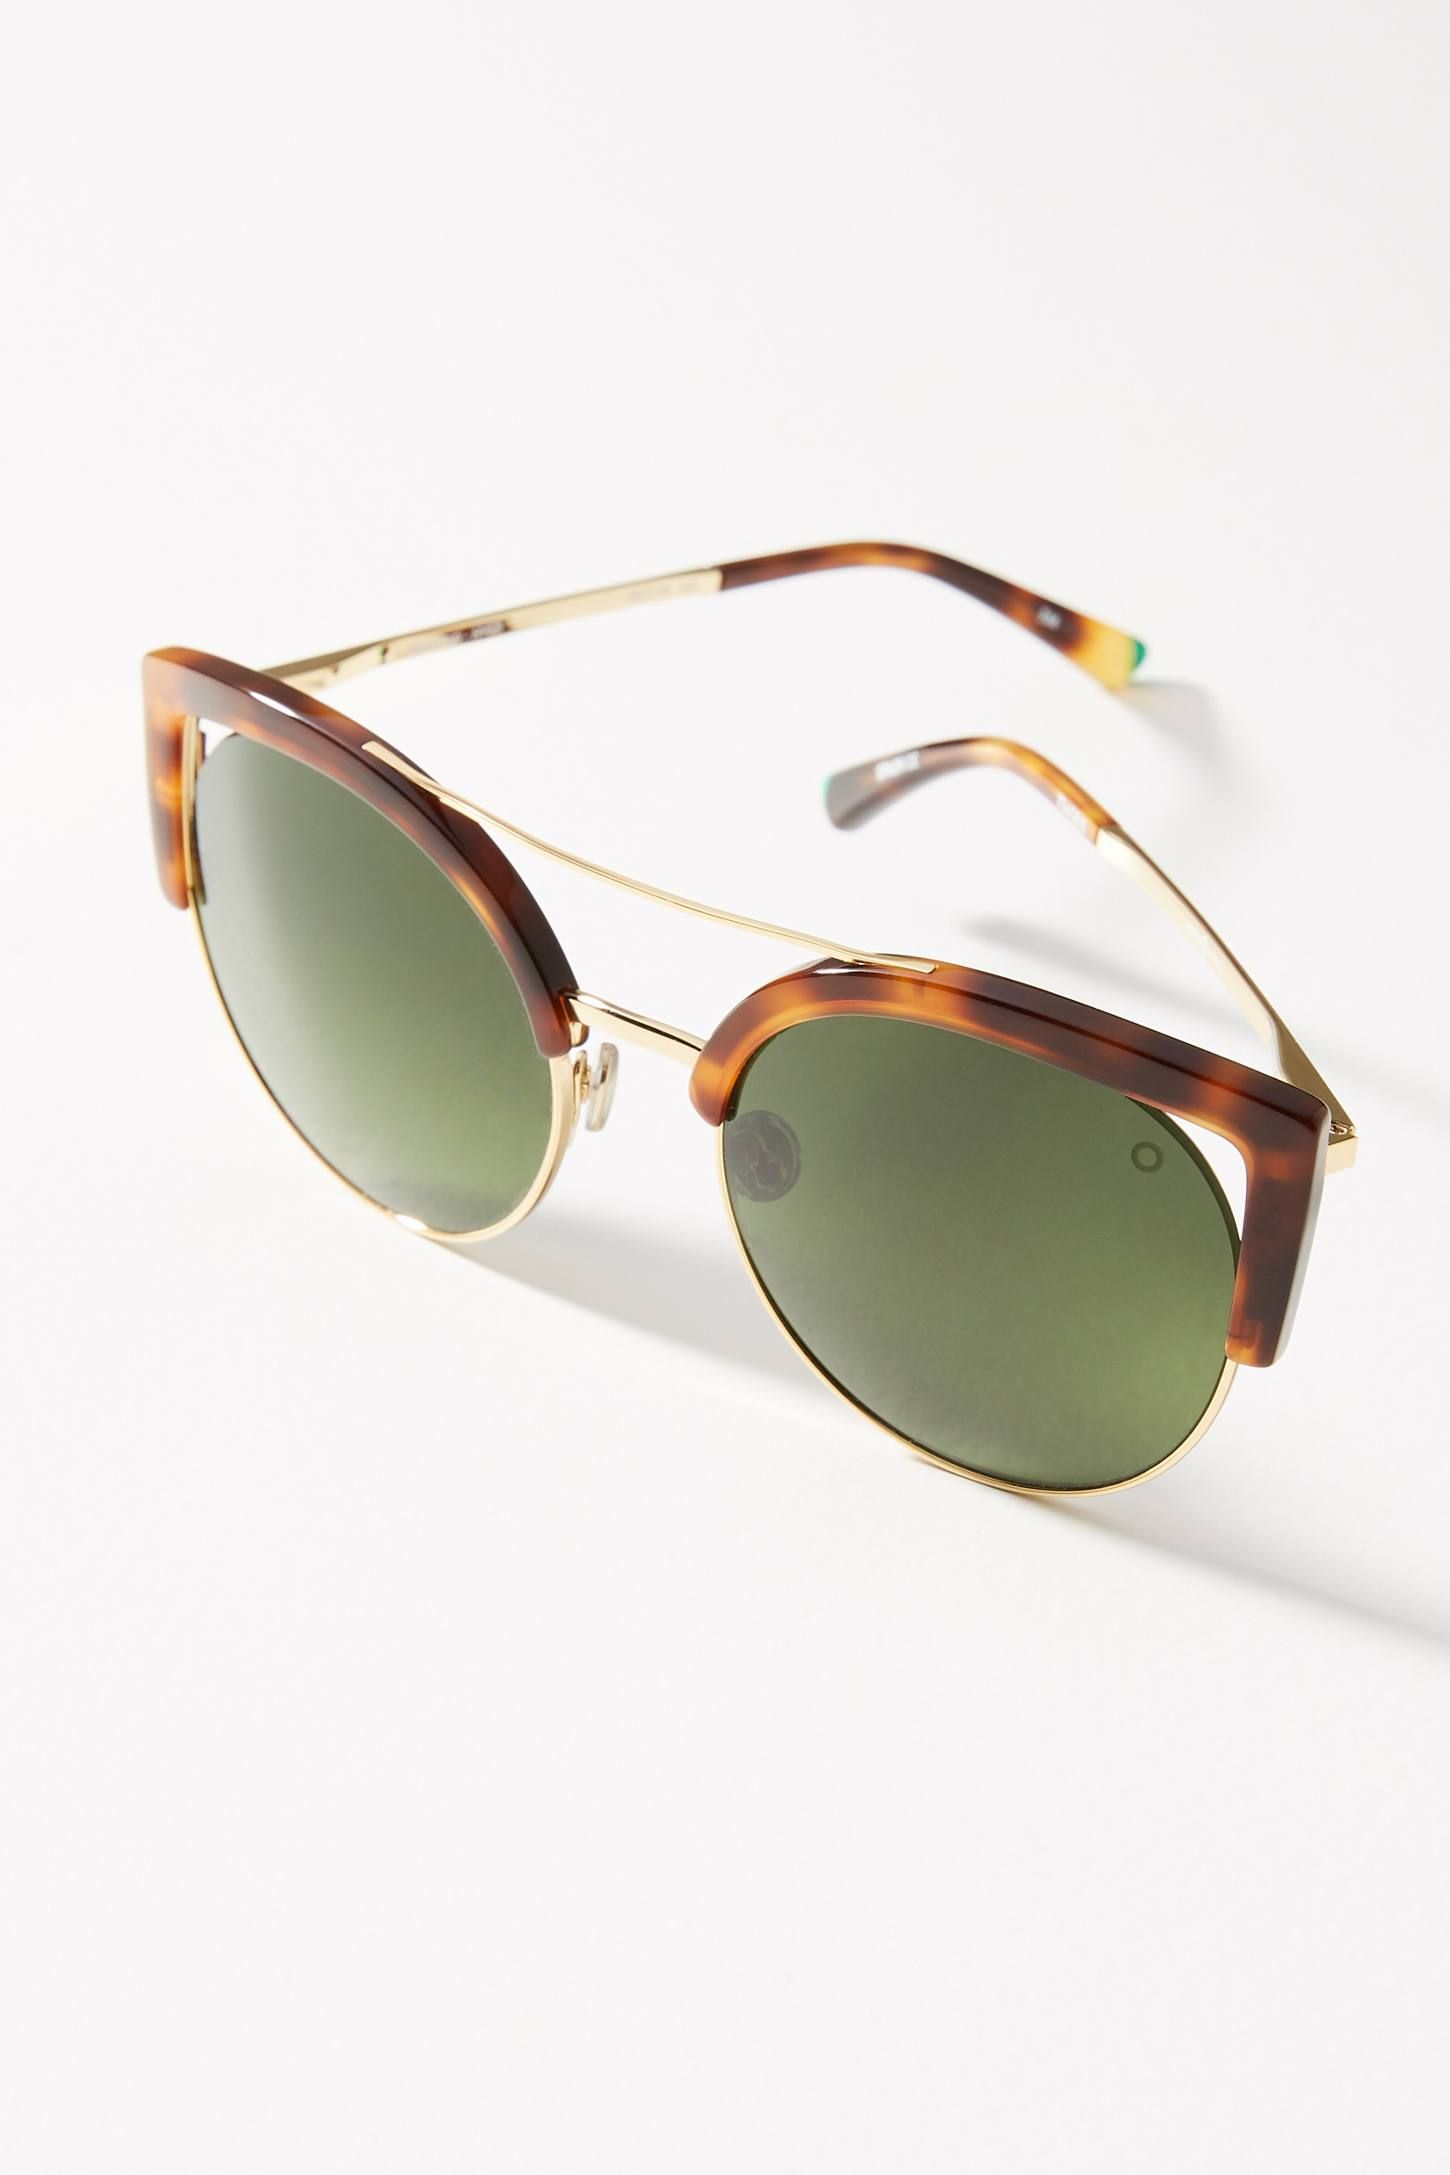 9404464a76 Shop the Etnia Barcelona Nisantasi Sunglasses and more Anthropologie at Anthropologie  today. Read customer reviews